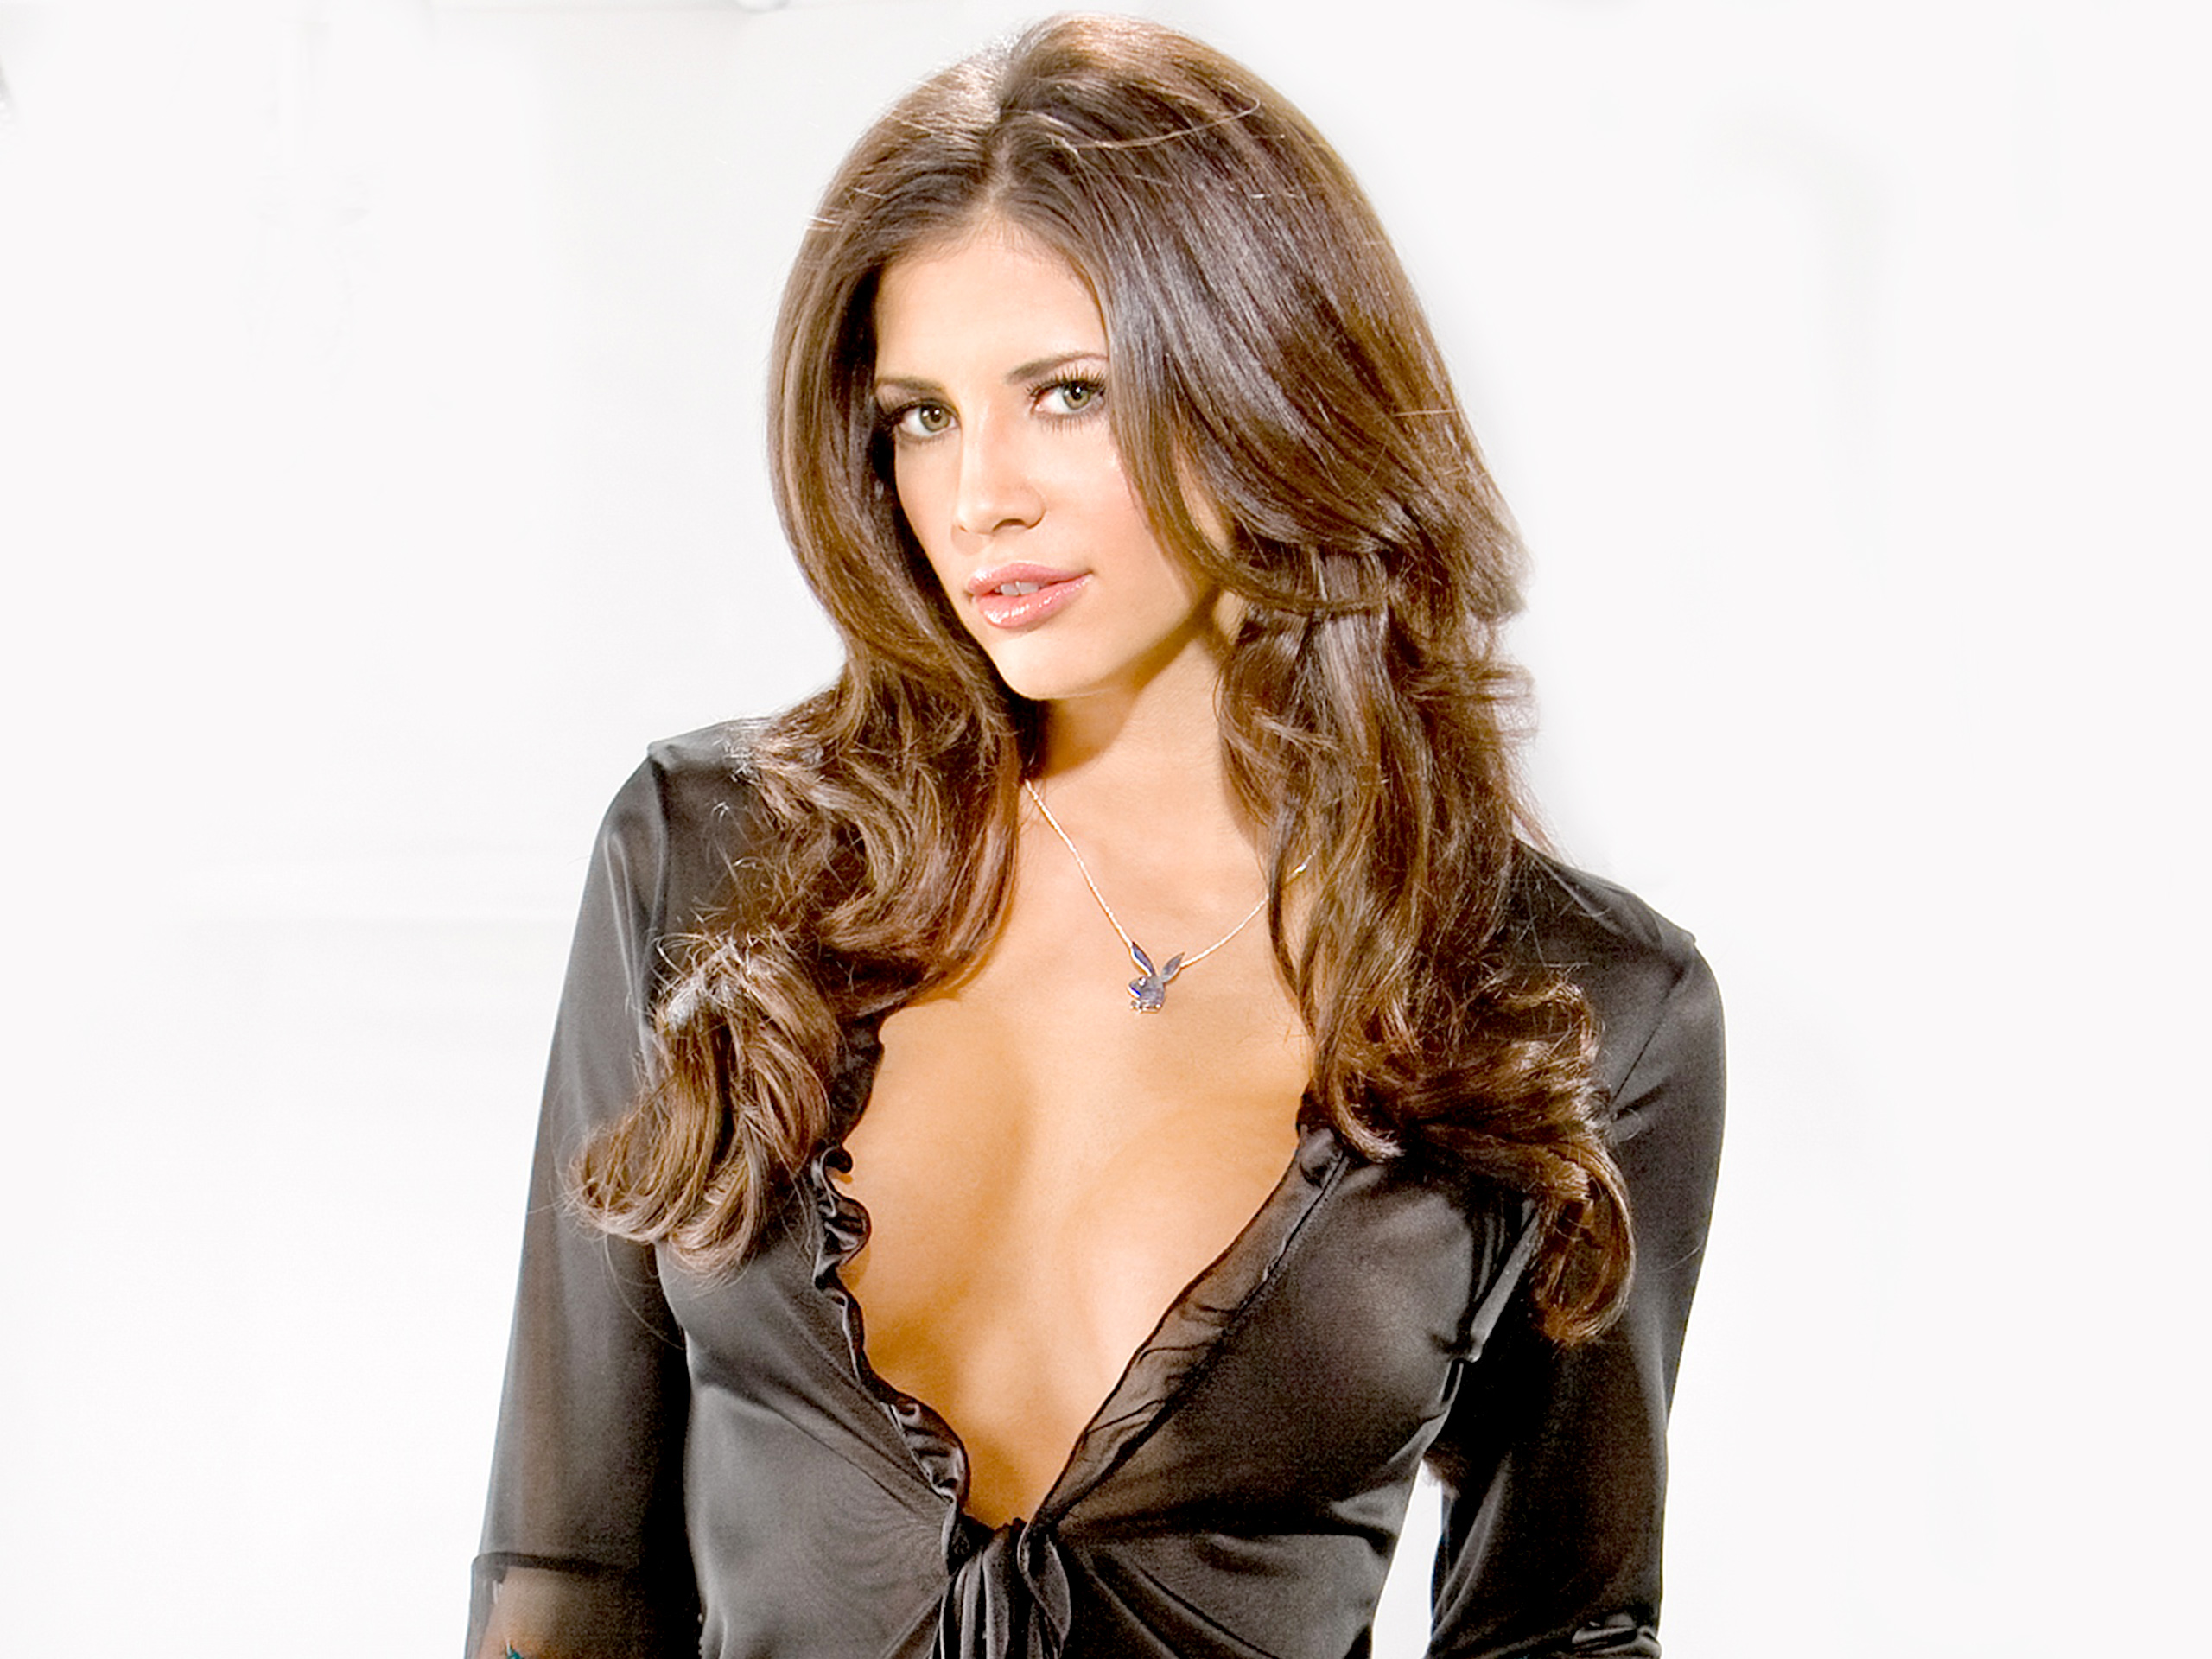 Hope Dworaczyk One Of The Most Beautiful Model In World Reveals Her Fitness Secrets